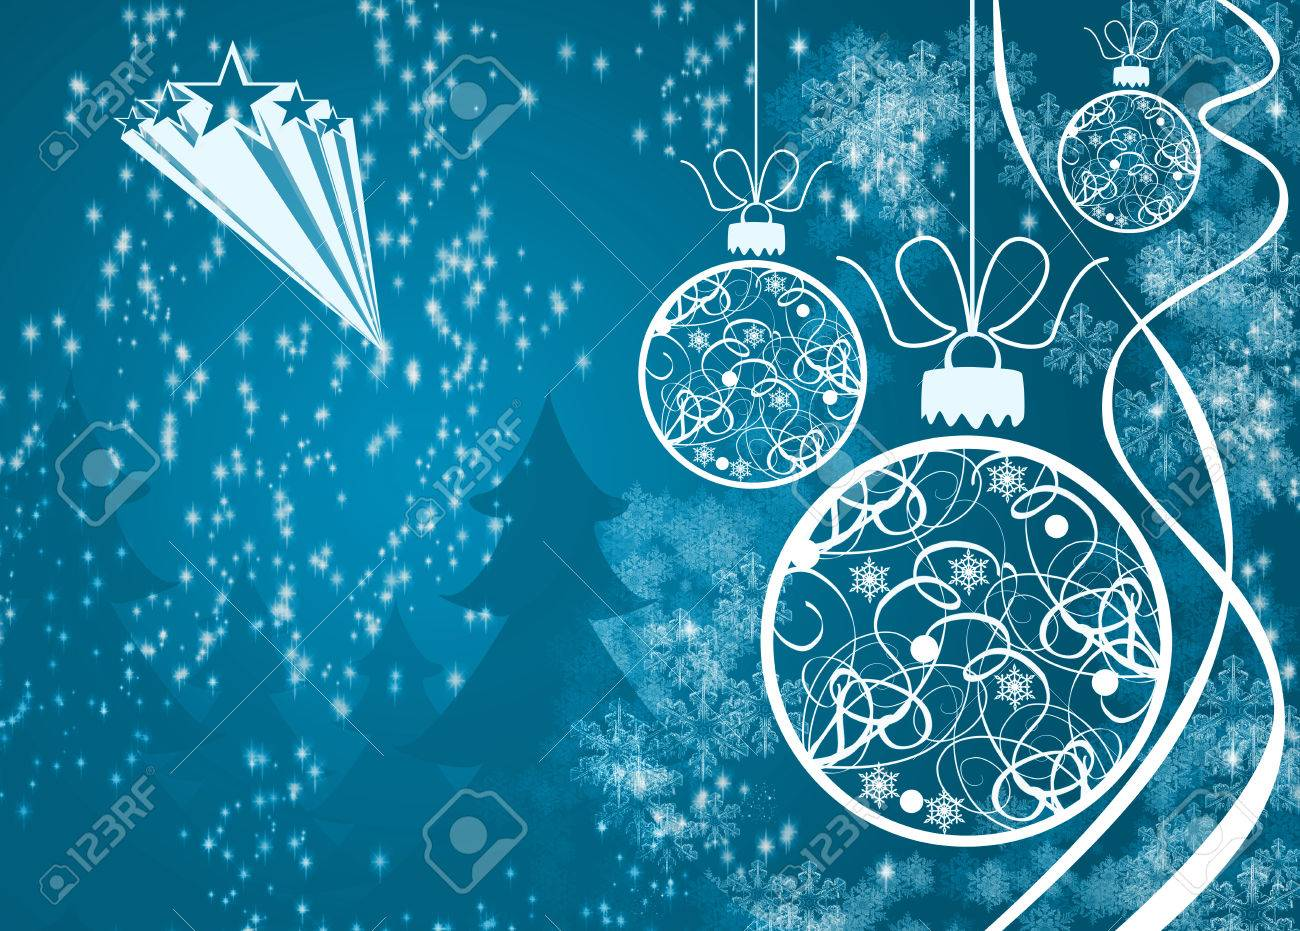 merry christmas decoration poster or flyer background space merry christmas decoration poster or flyer background space stock photo 23419492